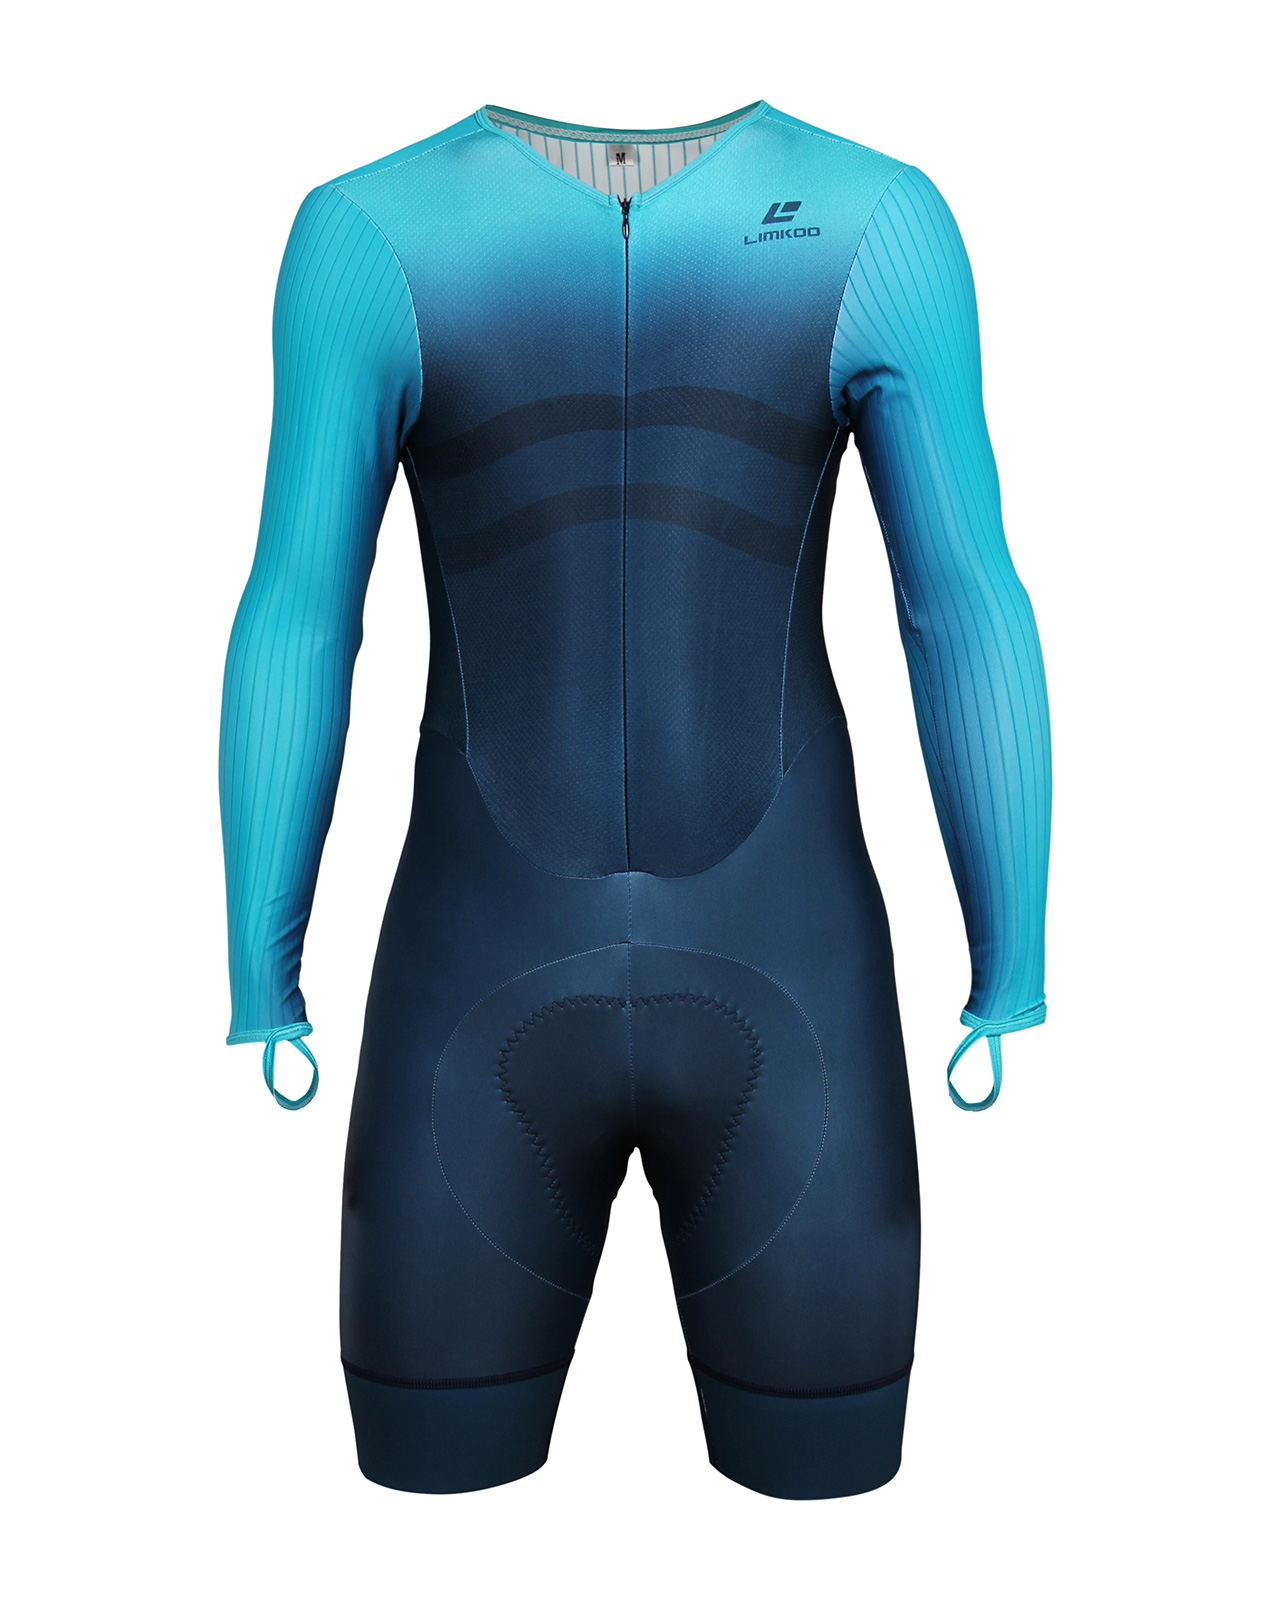 Cycling Skinsuit Cycling Speedsuit Cycling Wear